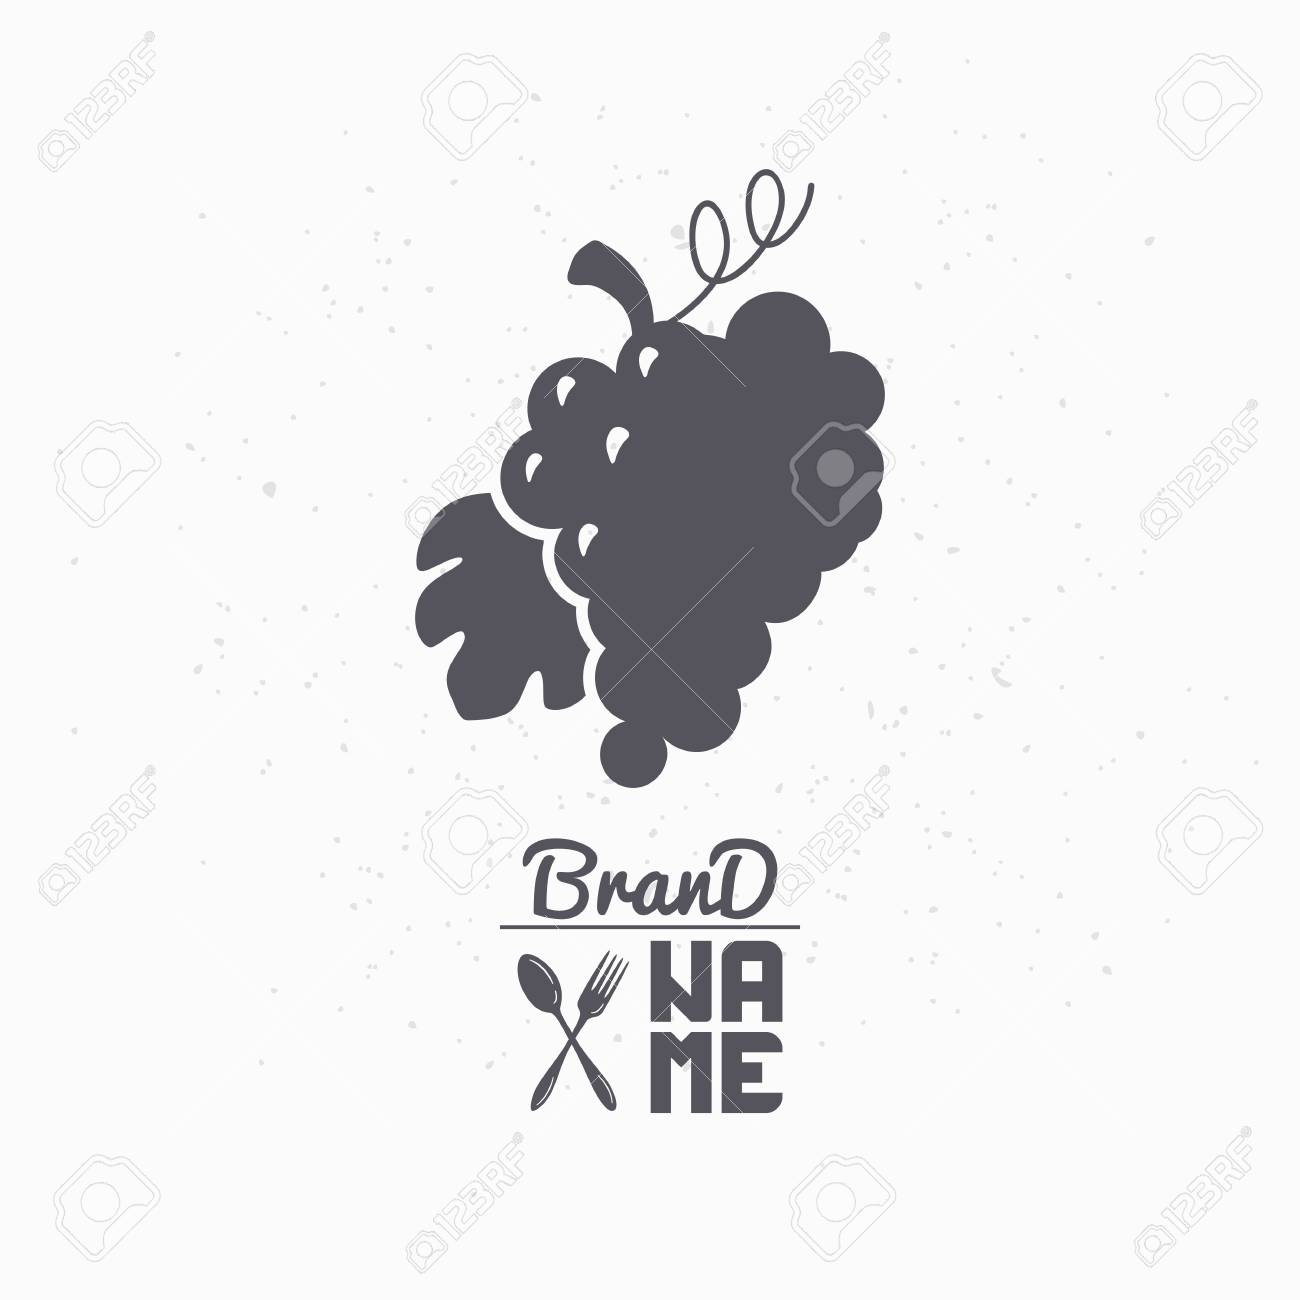 Hand Drawn Silhouette Of Grape Bunch Liquor Store Logo Template For Craft Food Packaging Or